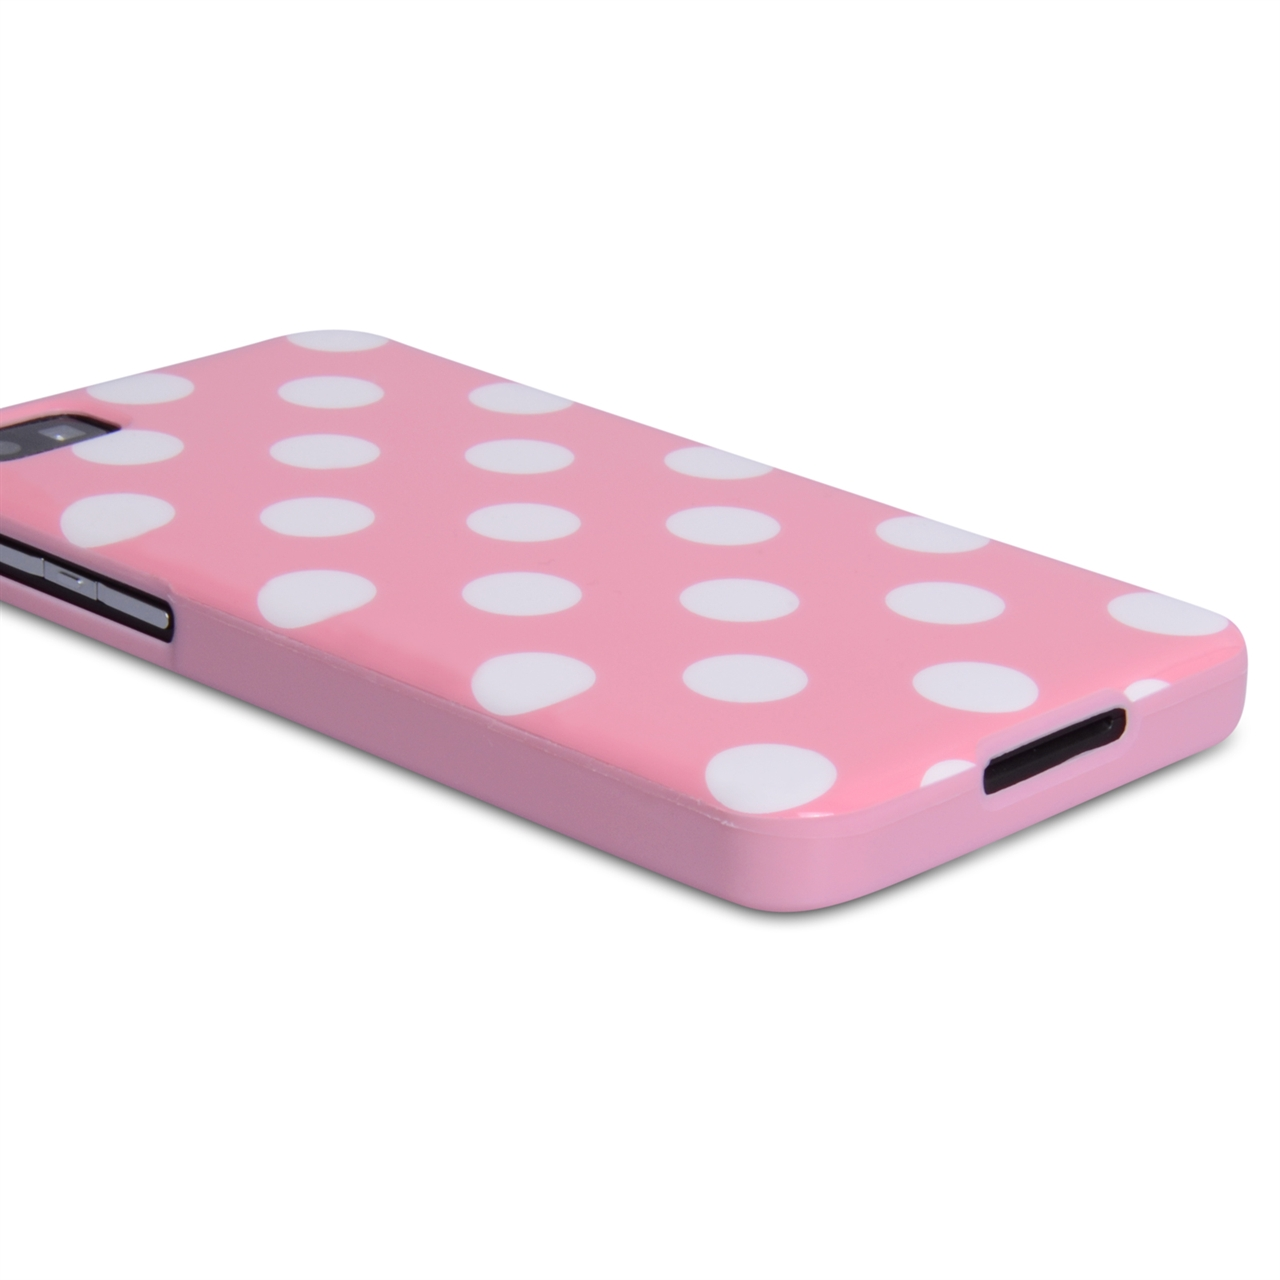 YouSave Accessories Blackberry Z10 Polkadot Gel Case - Baby Pink